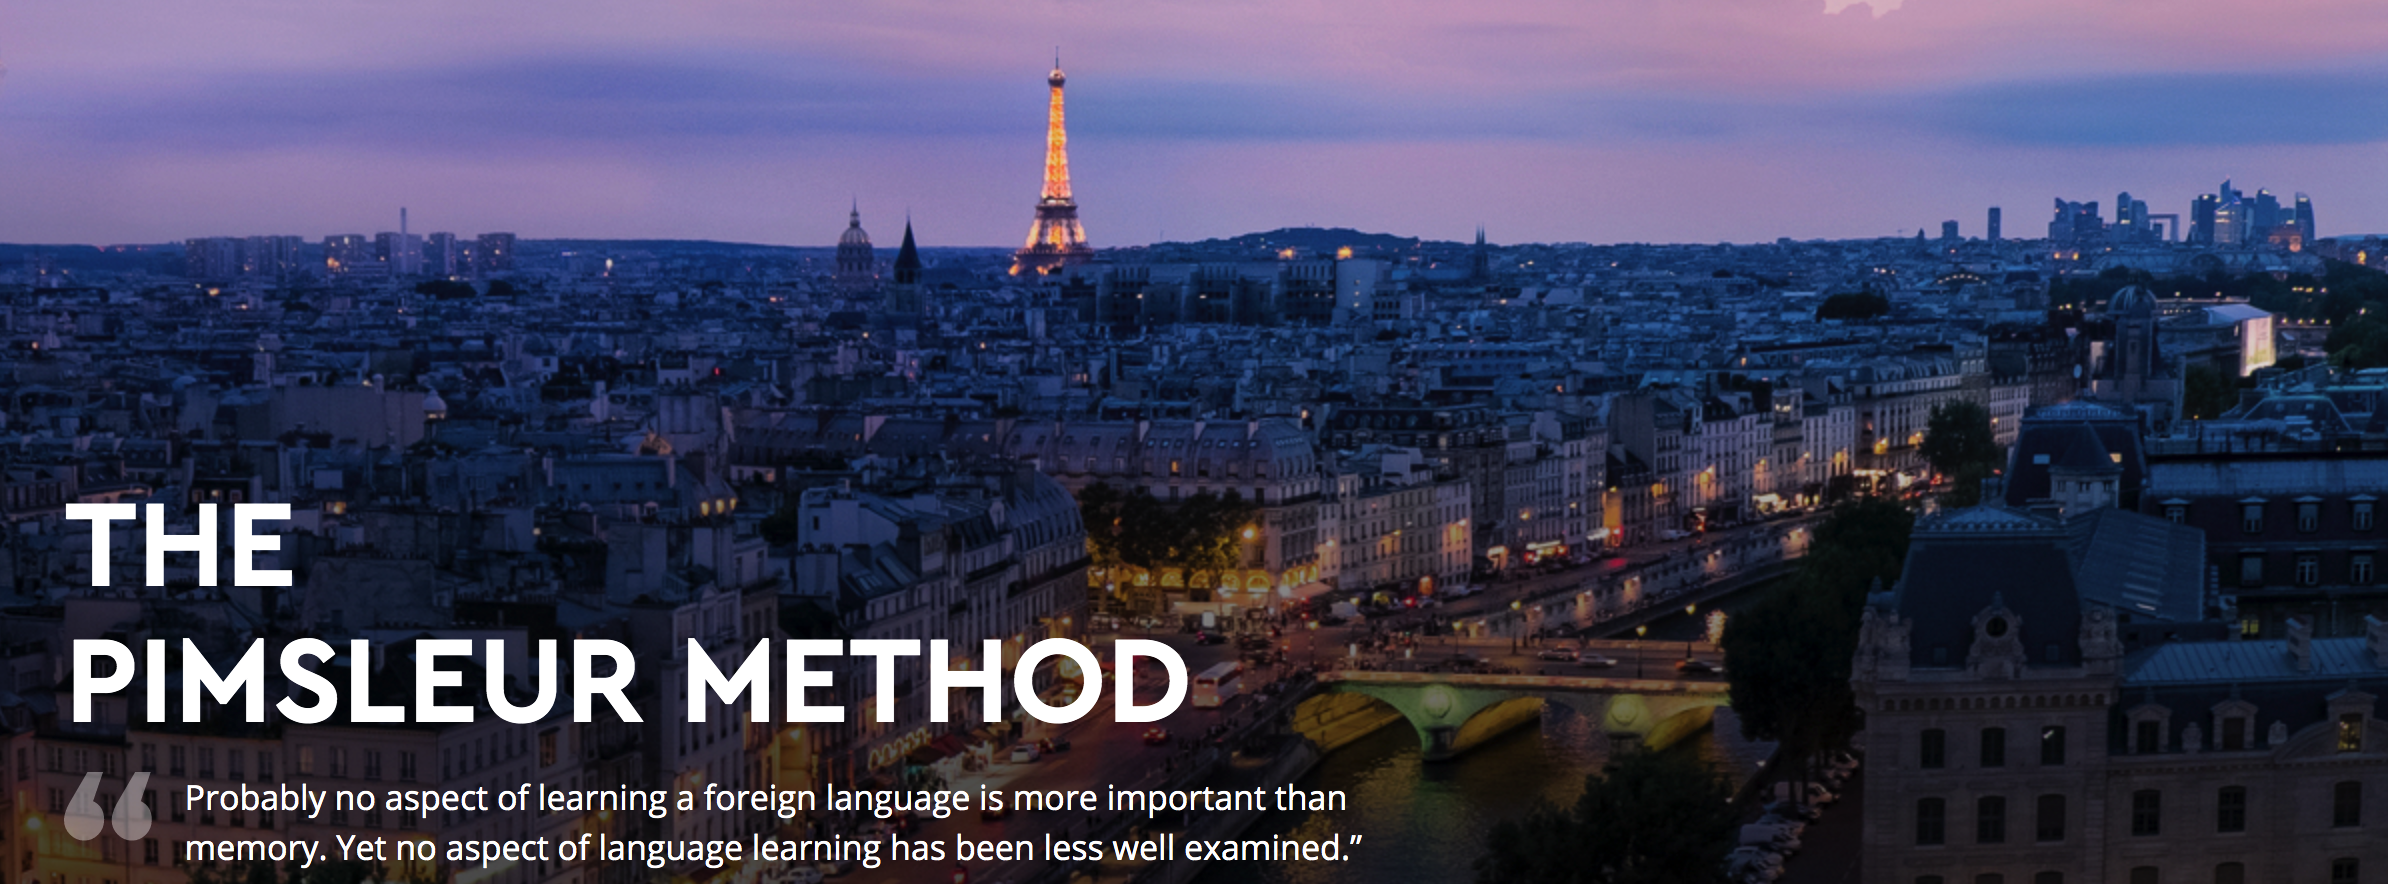 Image-of-quote-of-pimsleur-method